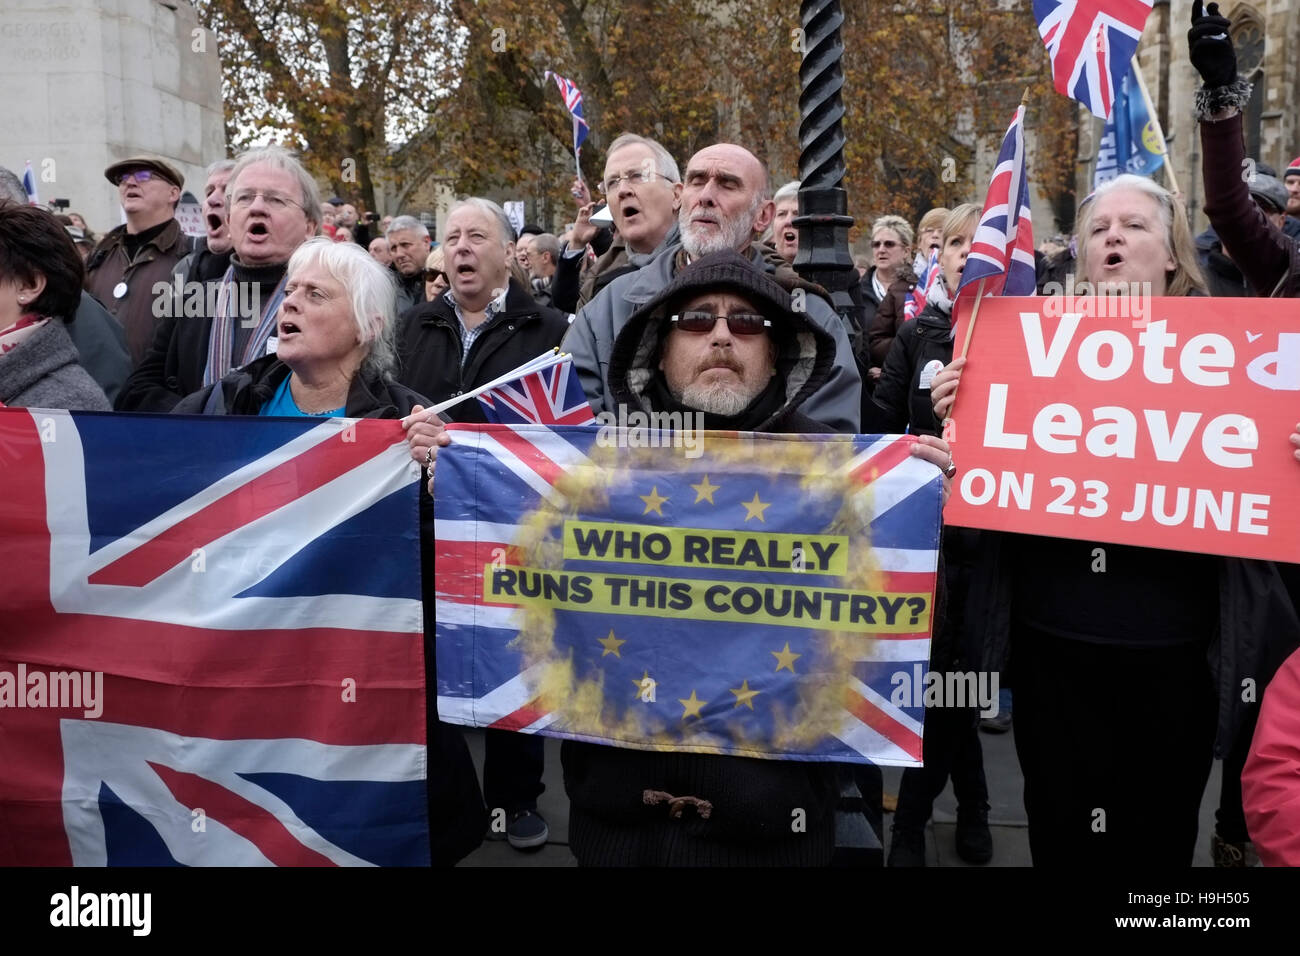 Yeah, soft brexit. Unless you're worried about violence from these guys.